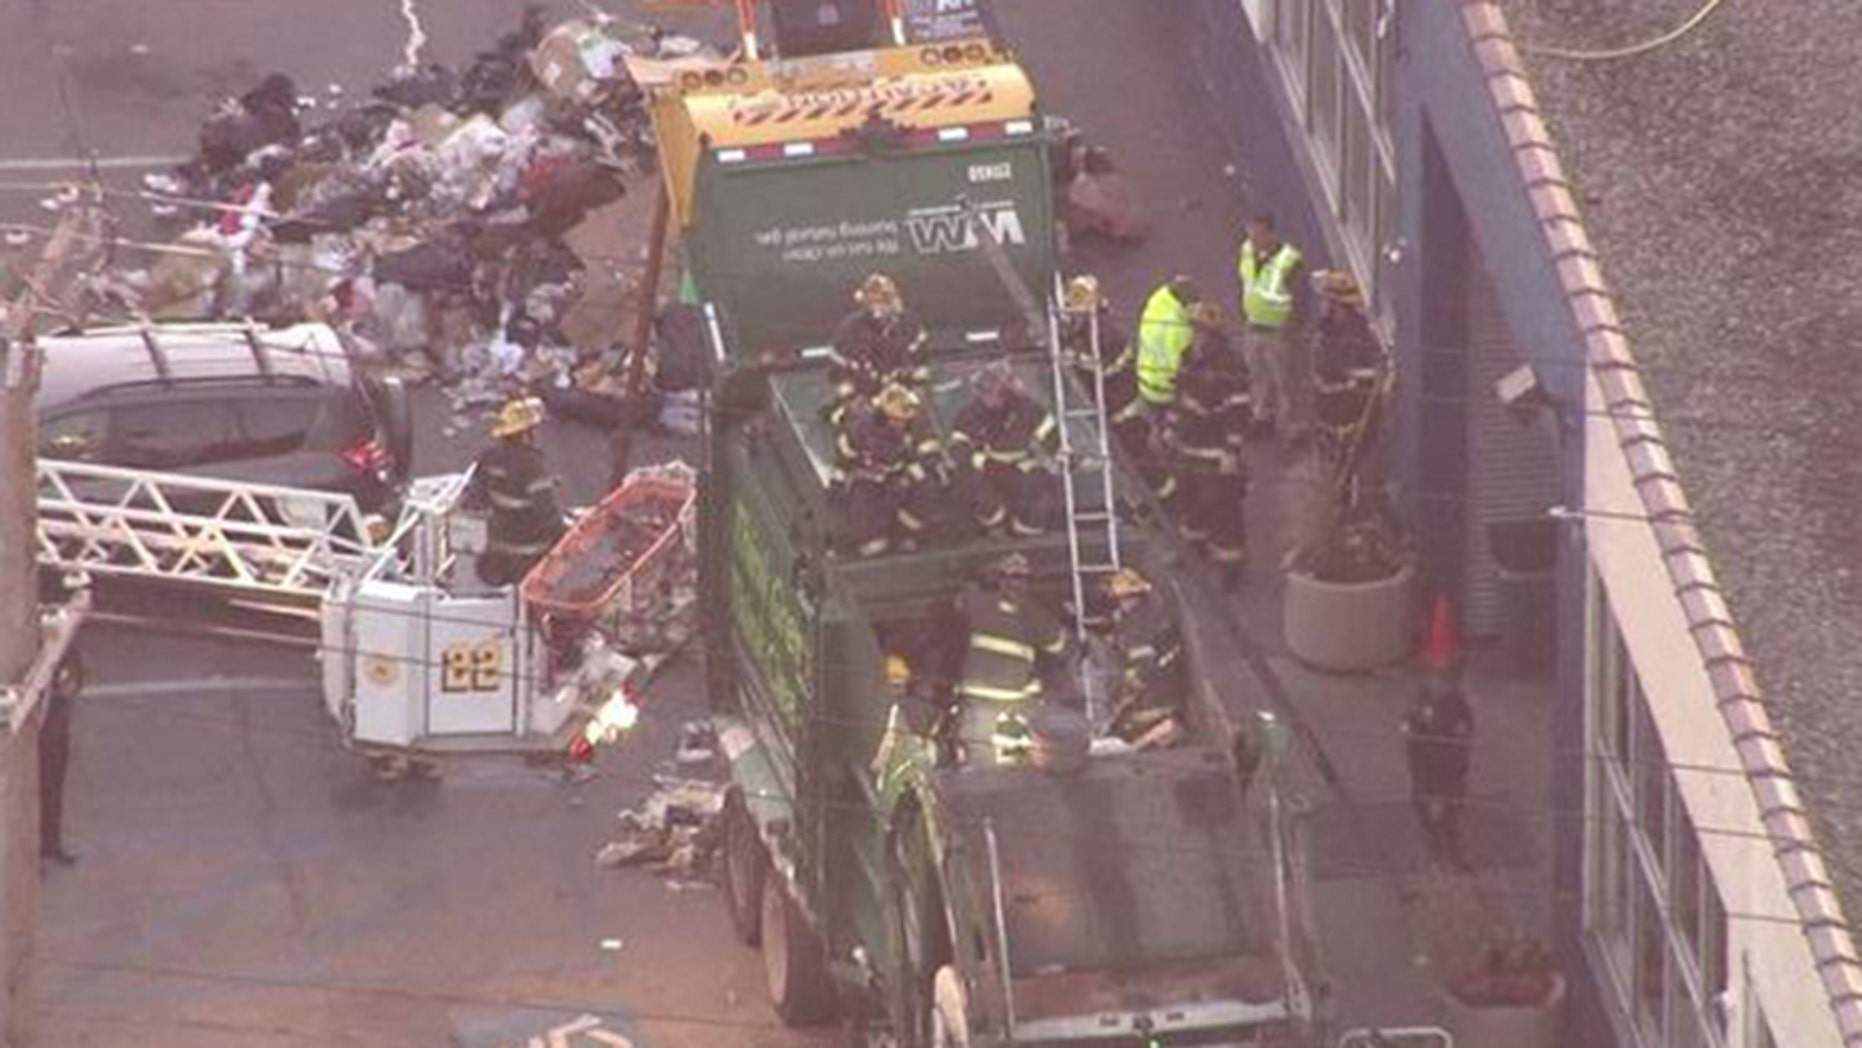 Nov. 27, 2017: Firefighters worked for hours Monday morning to rescue a man stuck in a garbage truck compactor in Philadelphia.